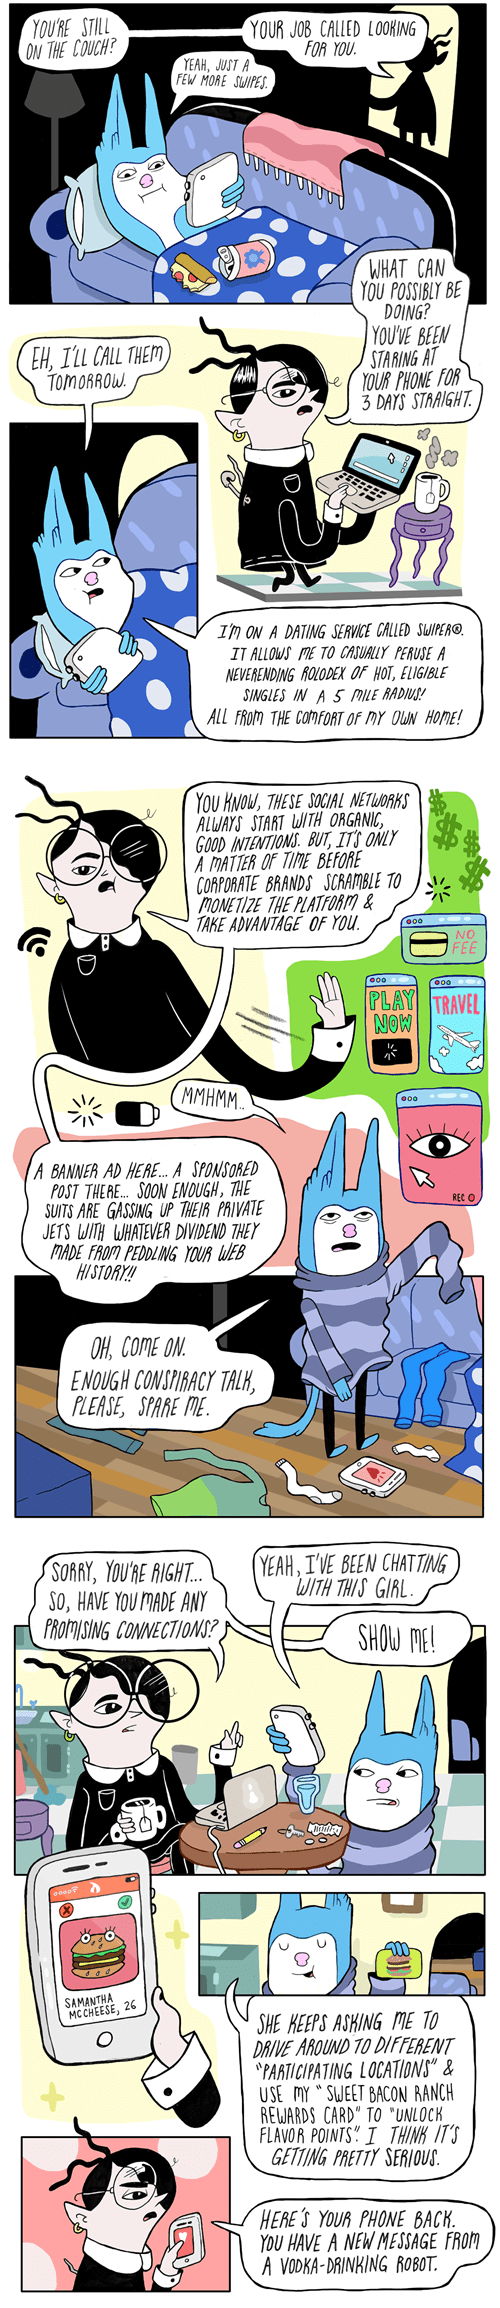 funny-web-comics-what-its-like-to-date-in-this-late-capitalist-hellscape